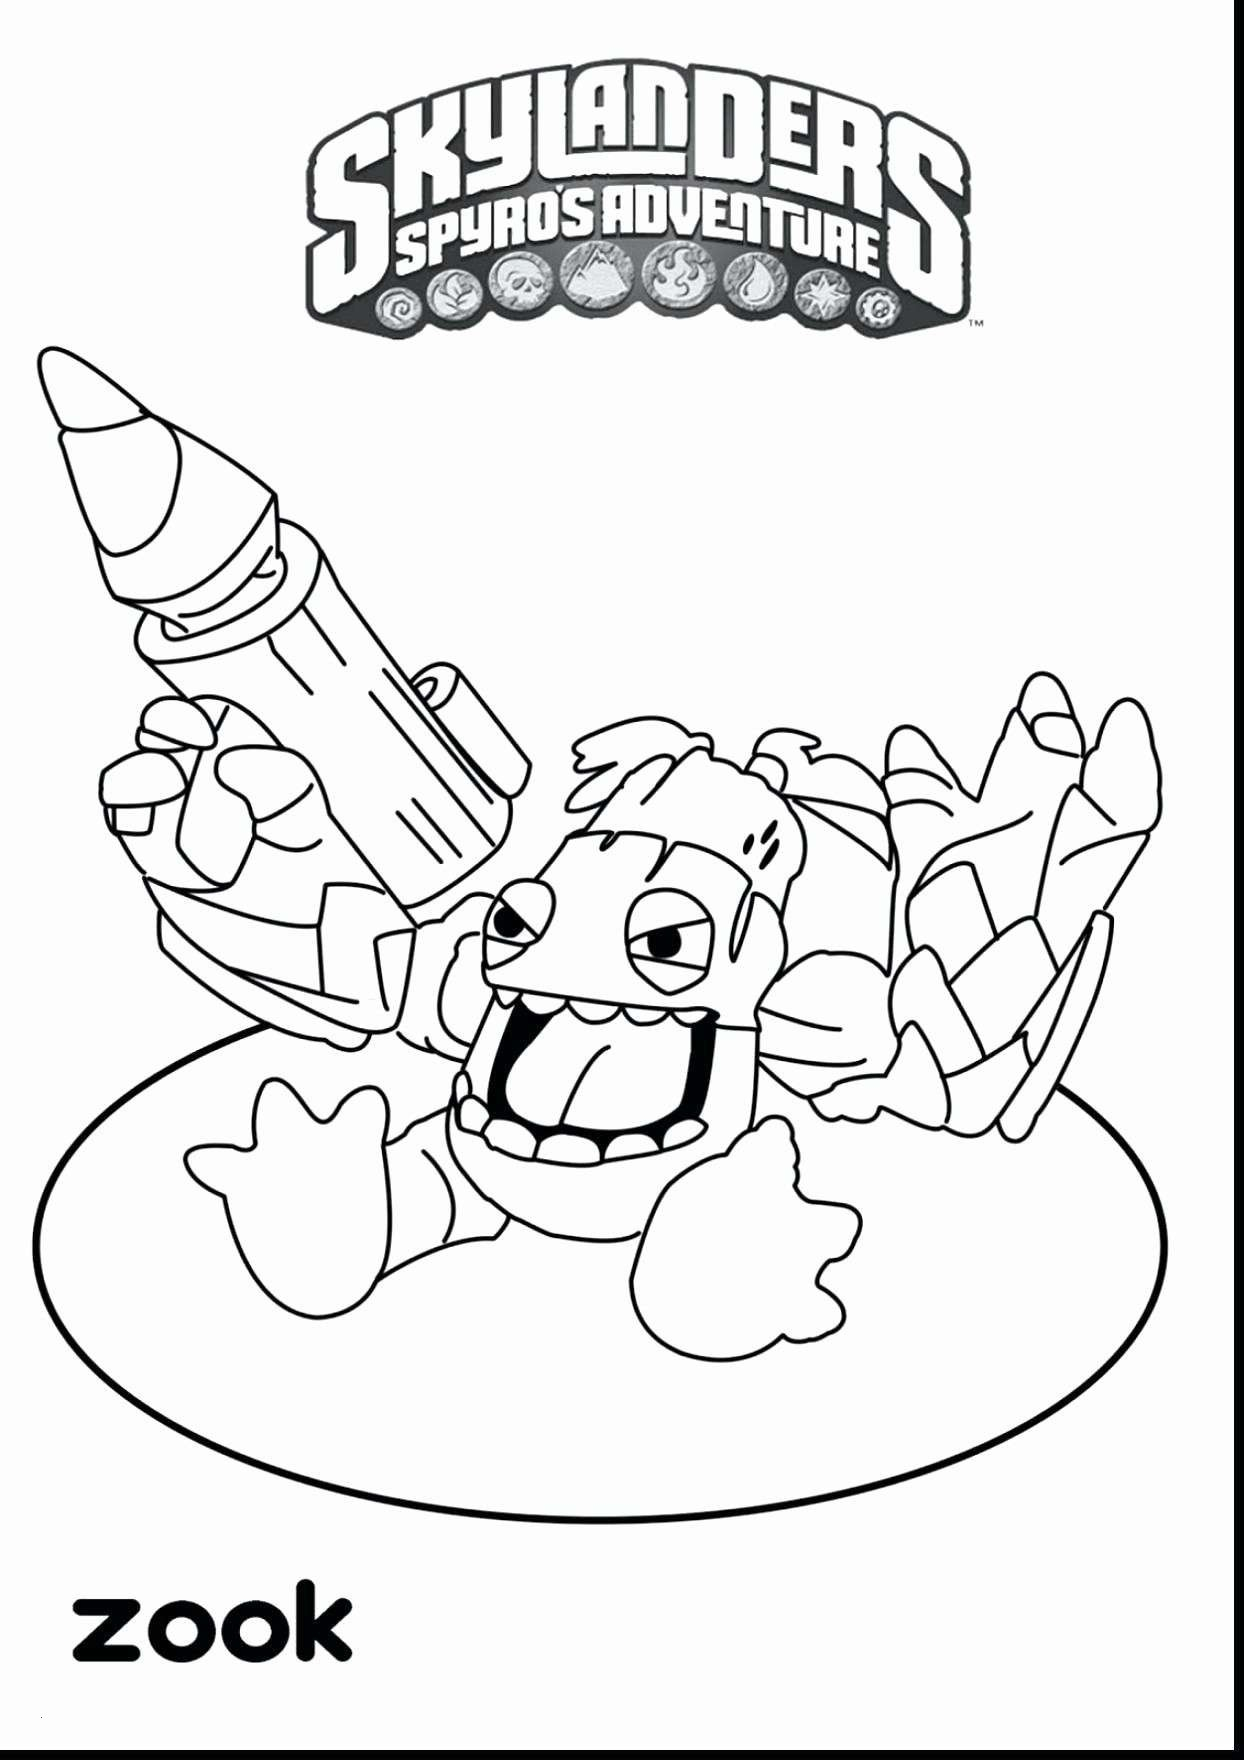 online coloring pages Collection-Kids Coloring Pages Beautiful Coloring Page Websites New Witch Coloring Pages New Crayola Pages 0d 20-i